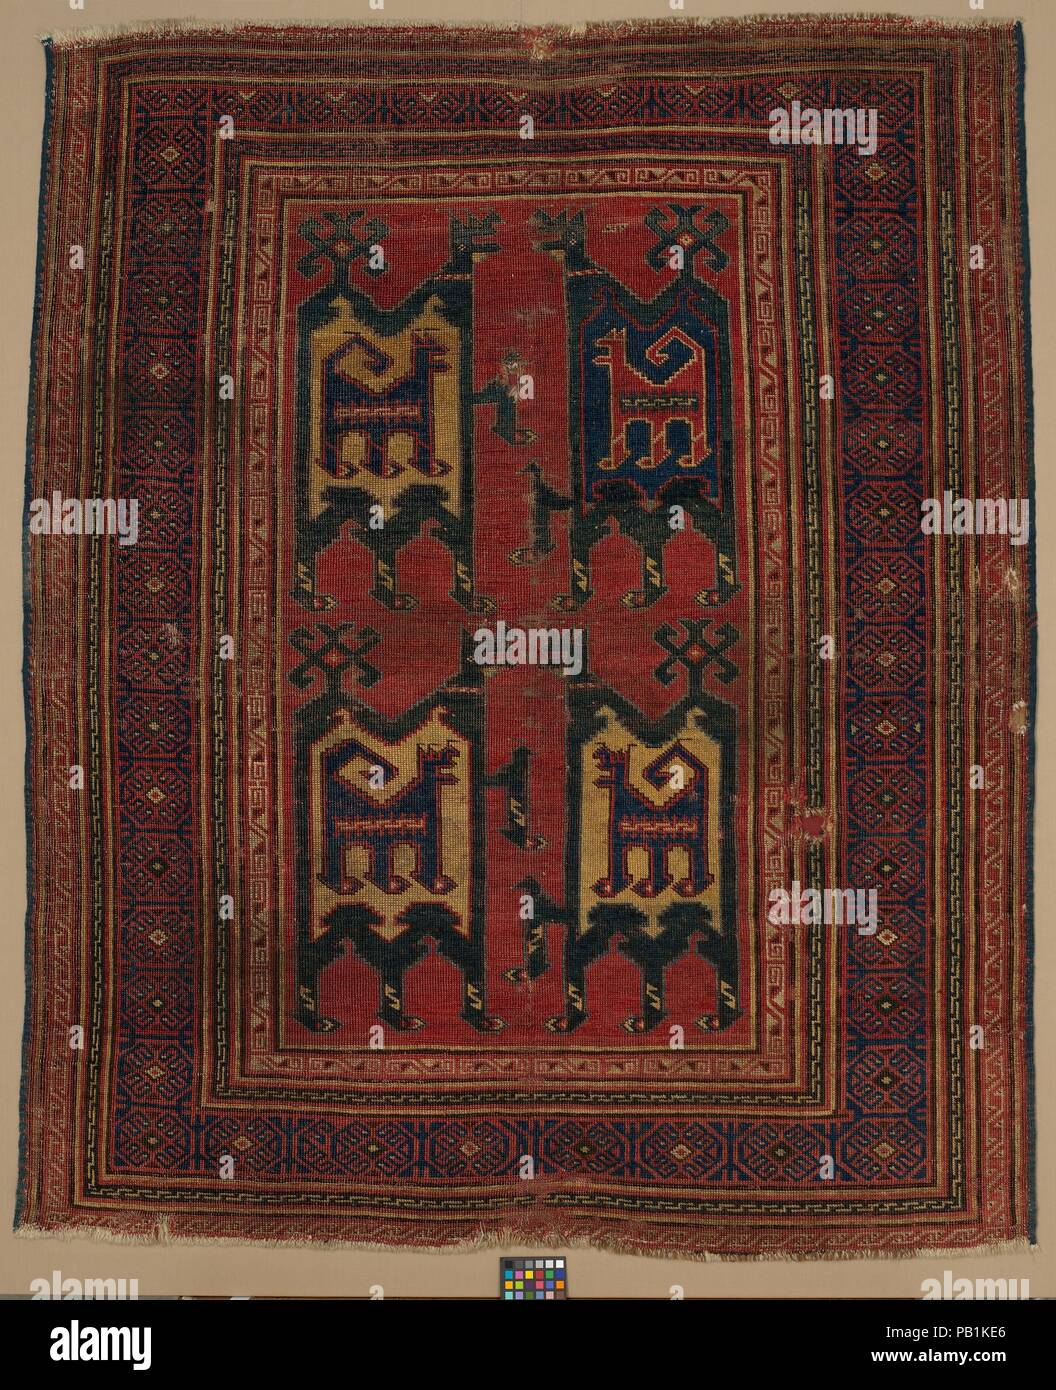 Confronted Animal Rug Dimensions Rug L 65 In 165 1 Cm W 54 1